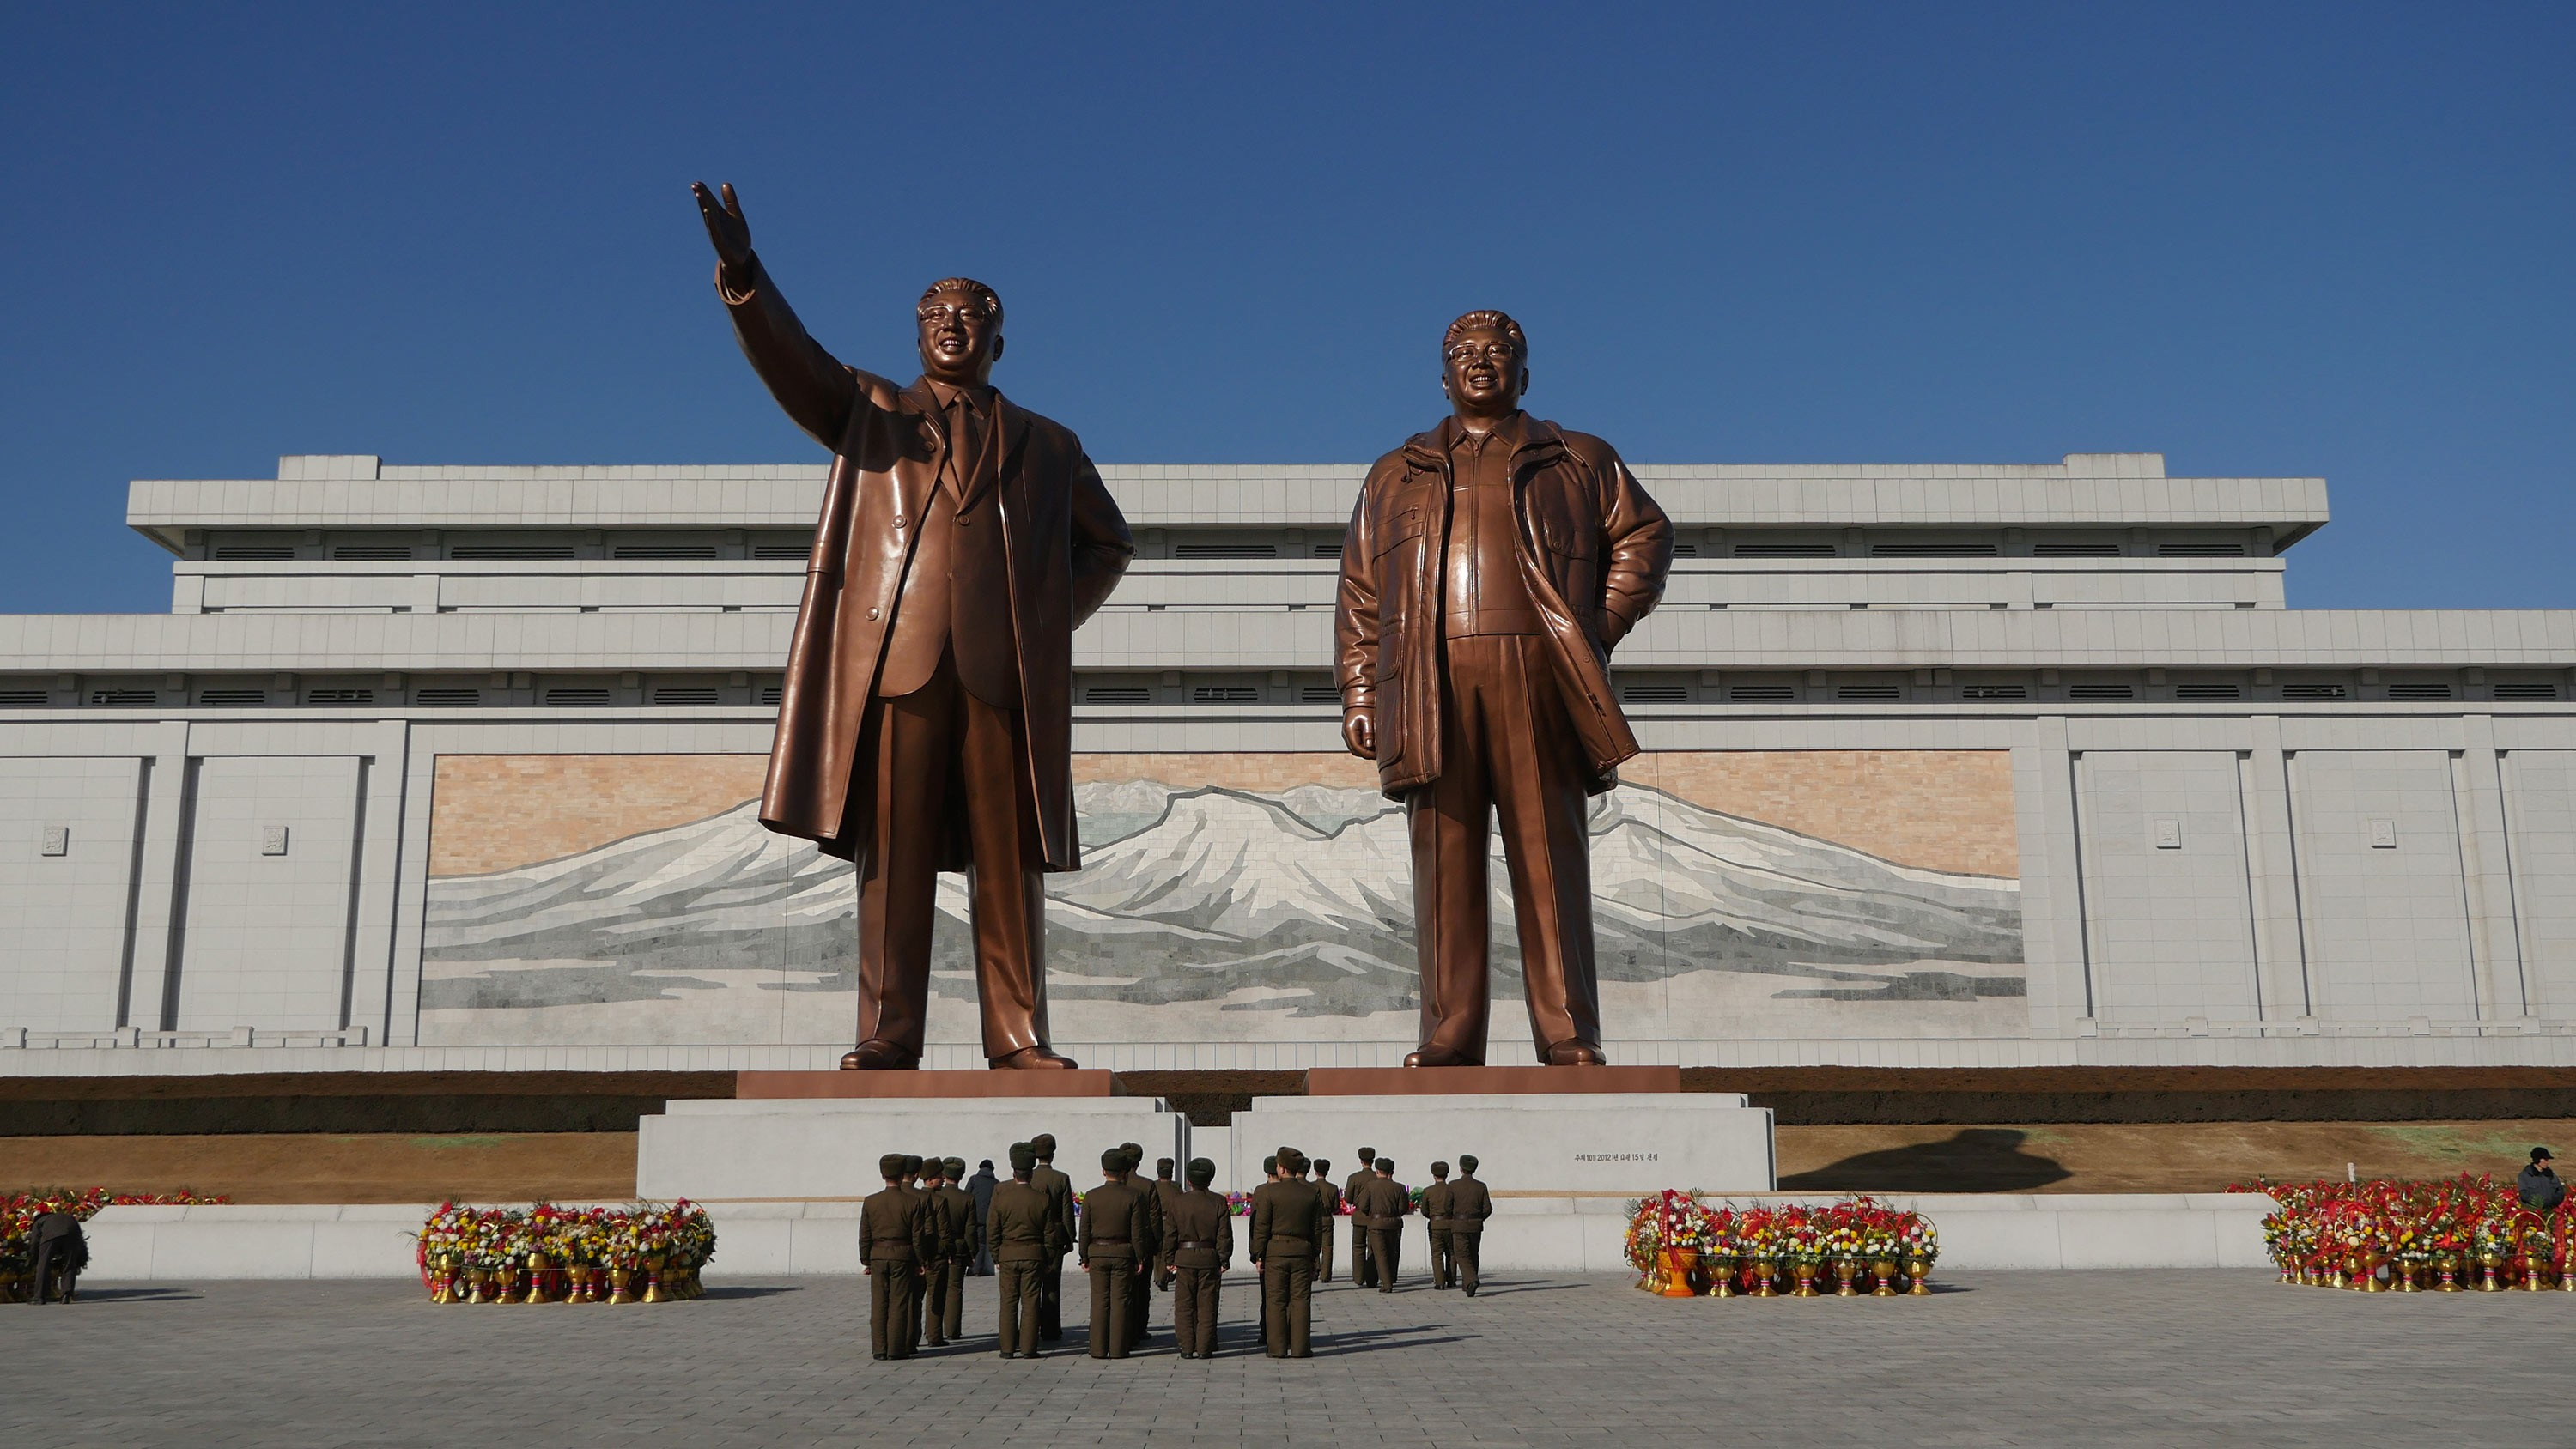 North Korea's ultra-secretive ways can make the regime easier to track online